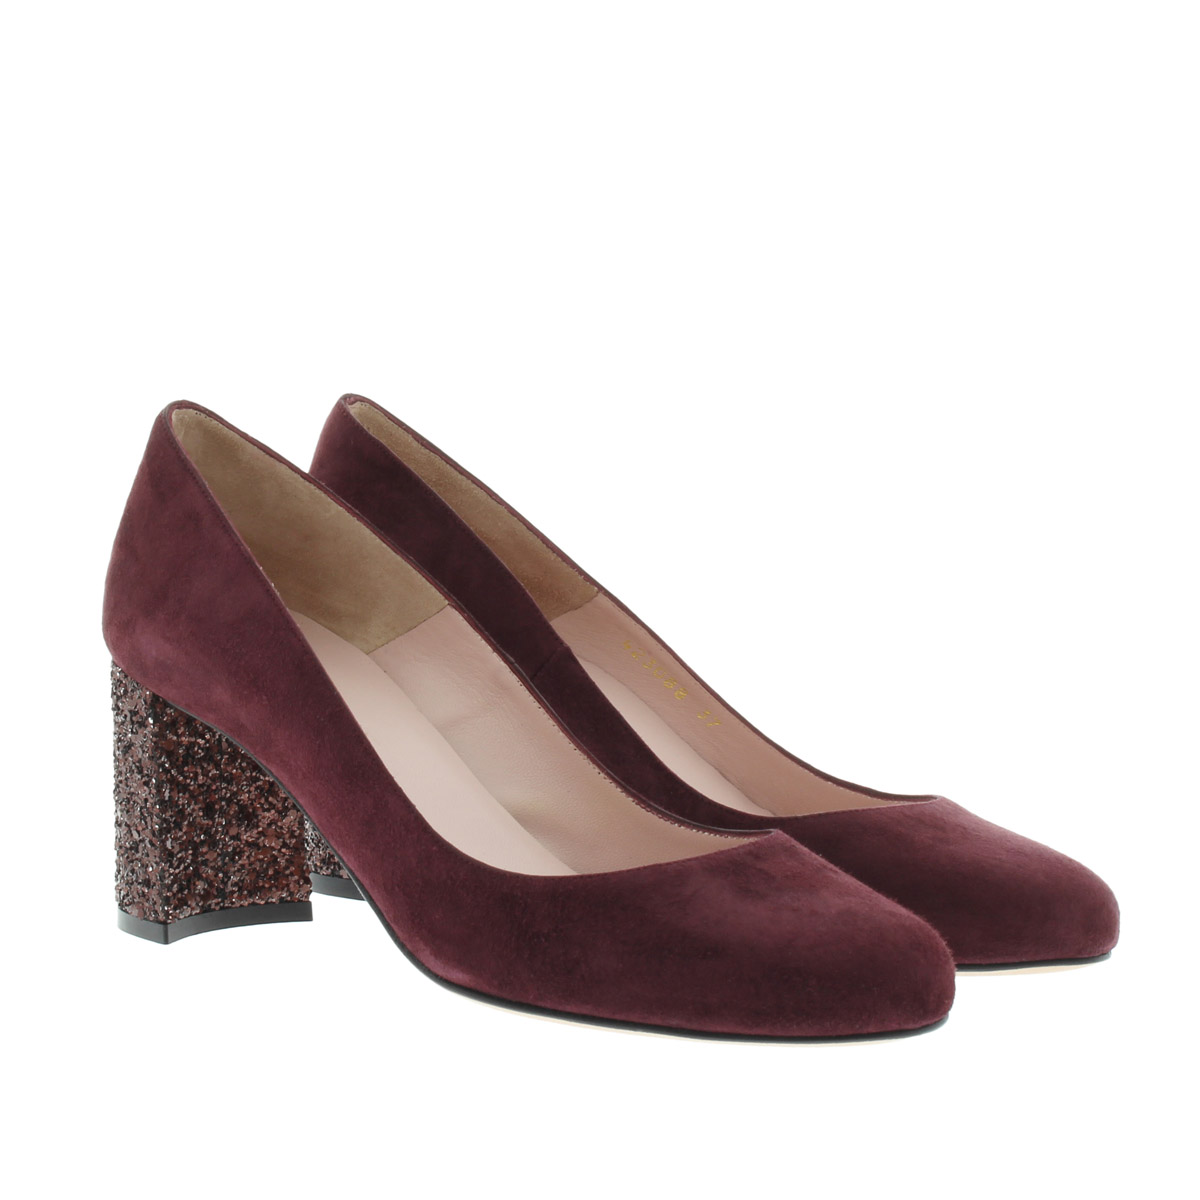 Fashionette Pura Lopez Pumps